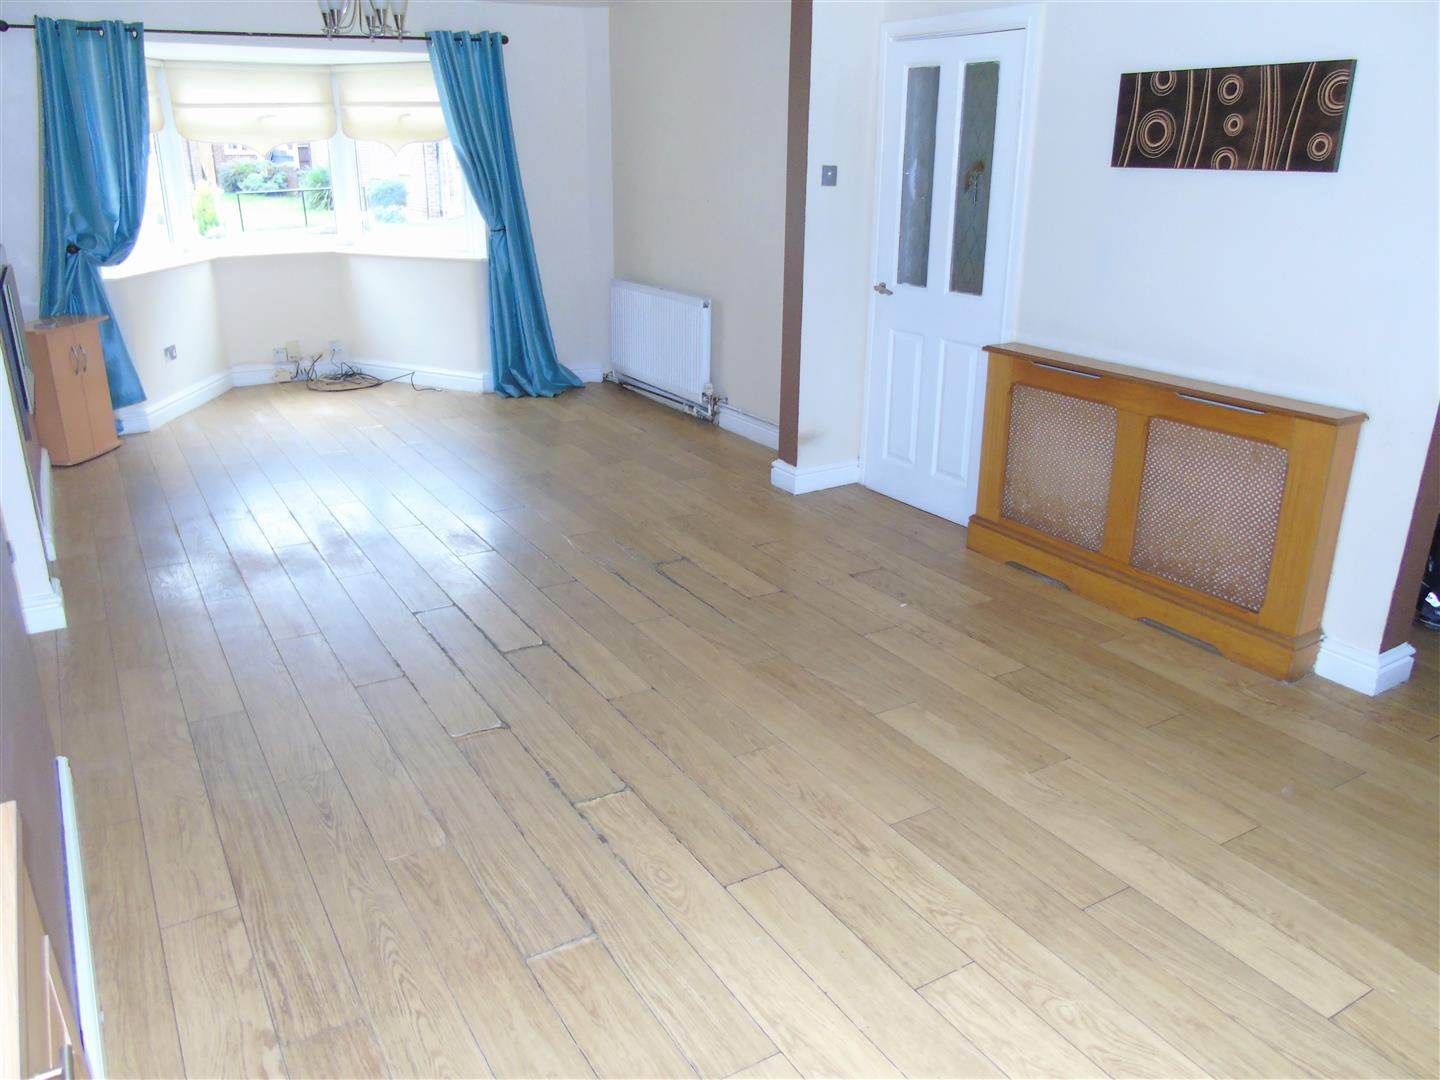 3 Bedrooms, House - Semi-Detached, Lincoln Drive, Liverpool